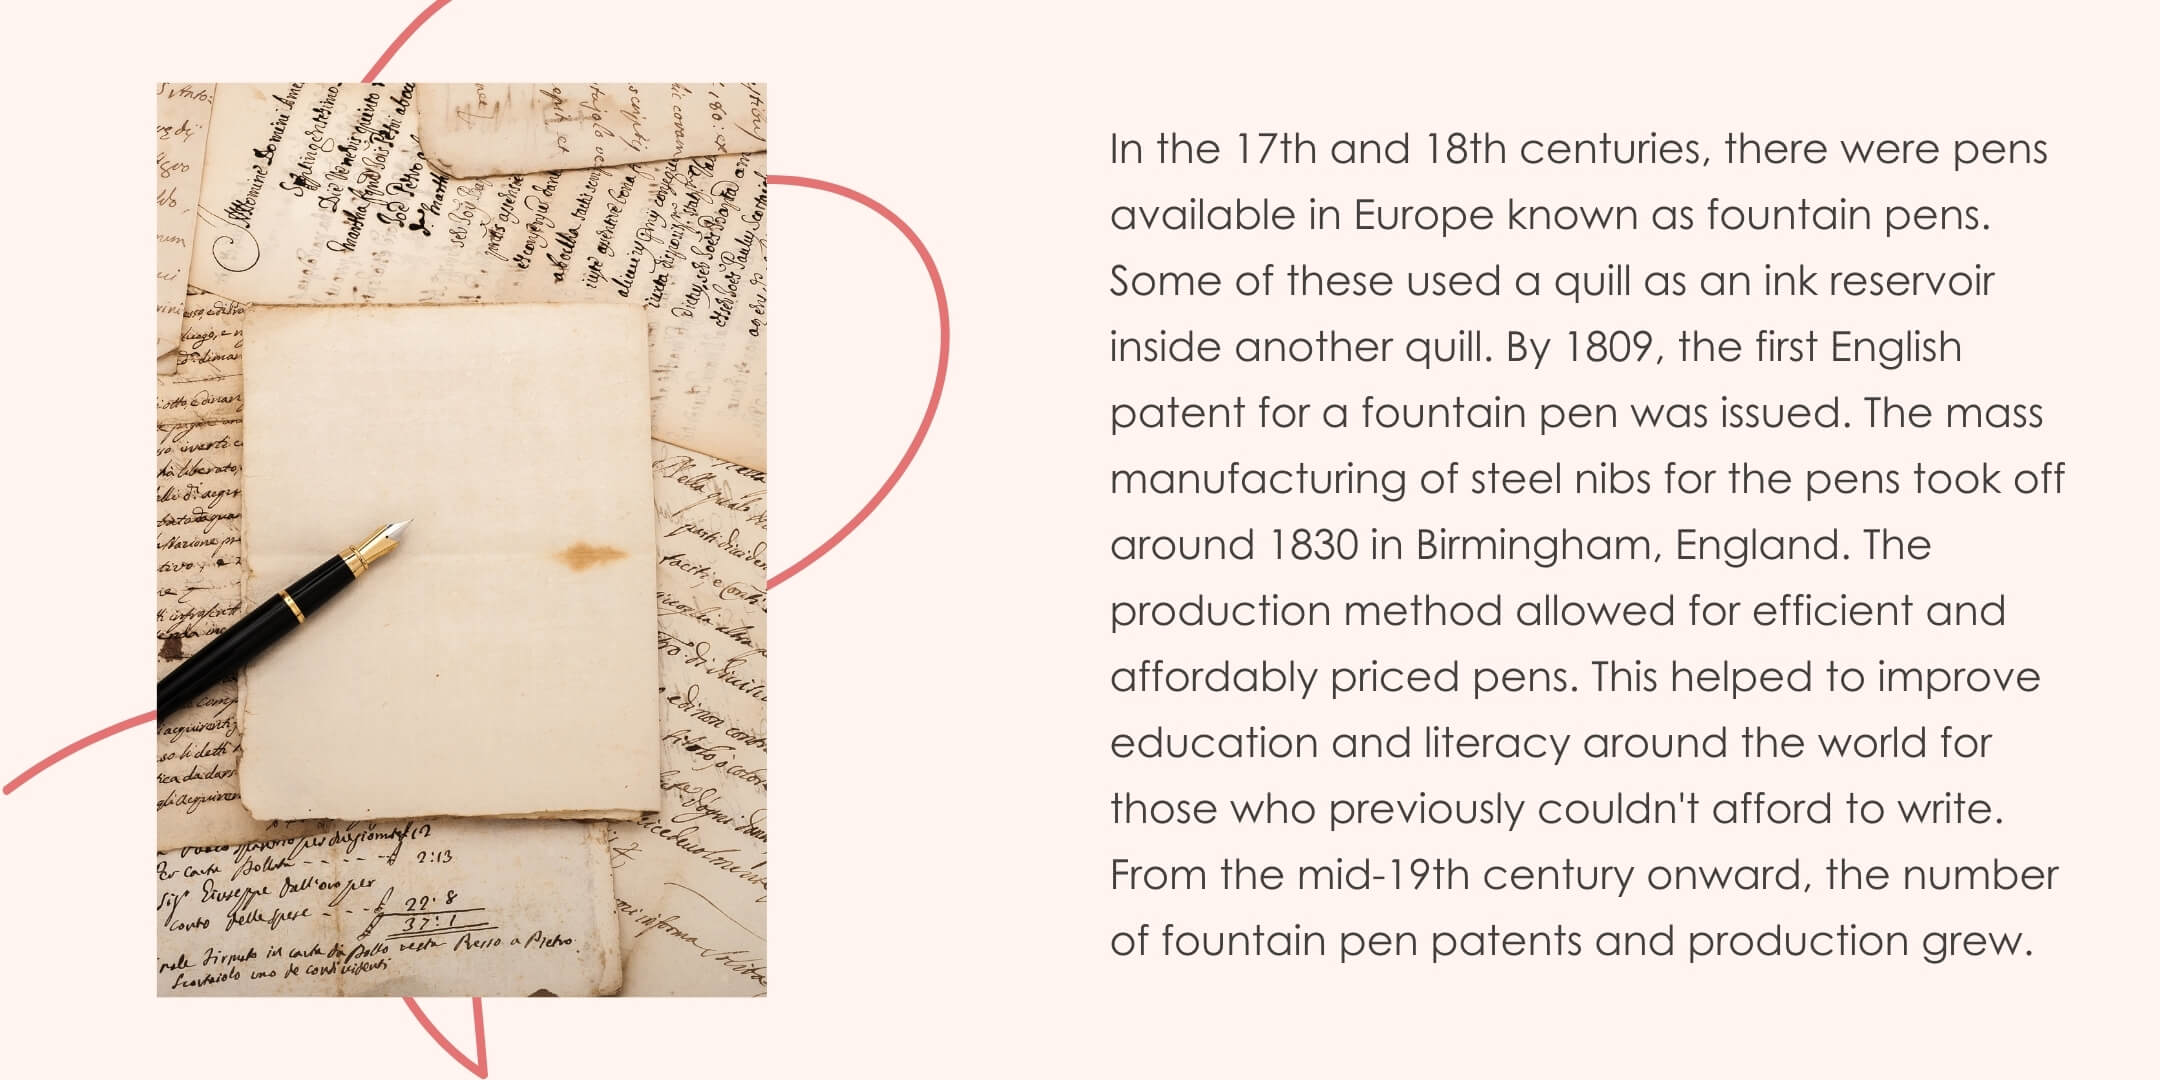 History of fountain pens